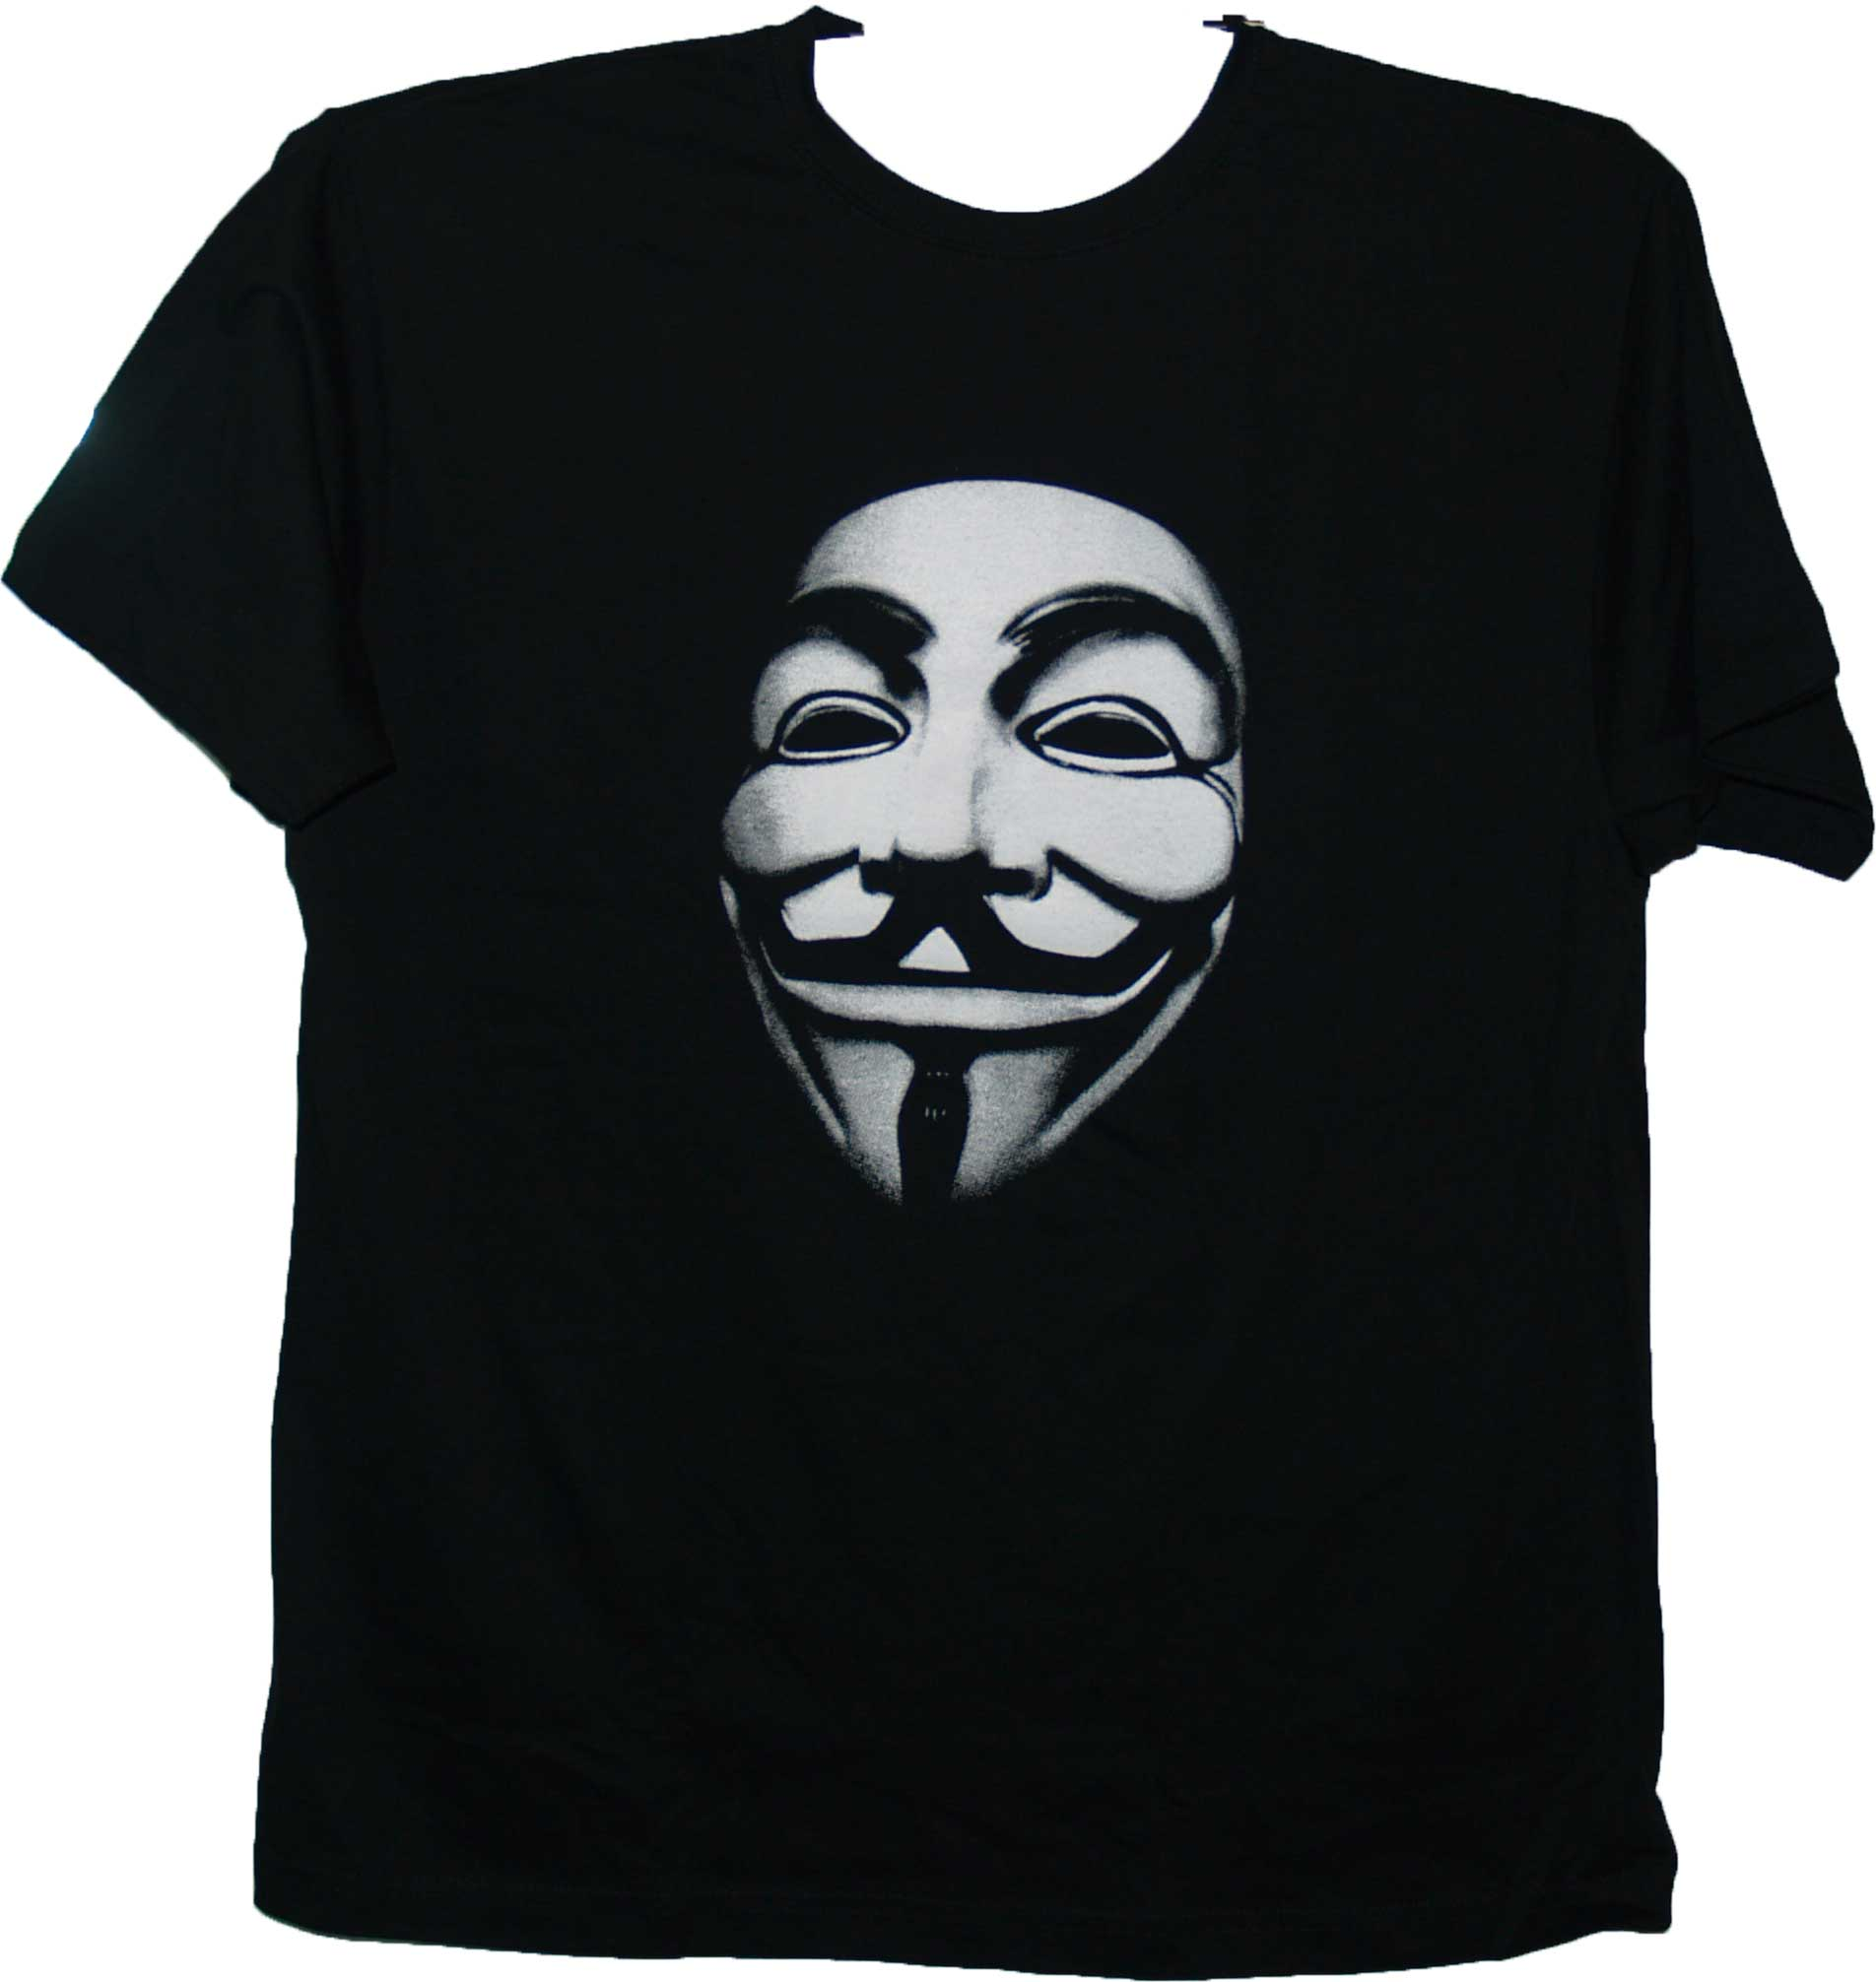 CAMISETA ANONYMOUS -TALLA M-